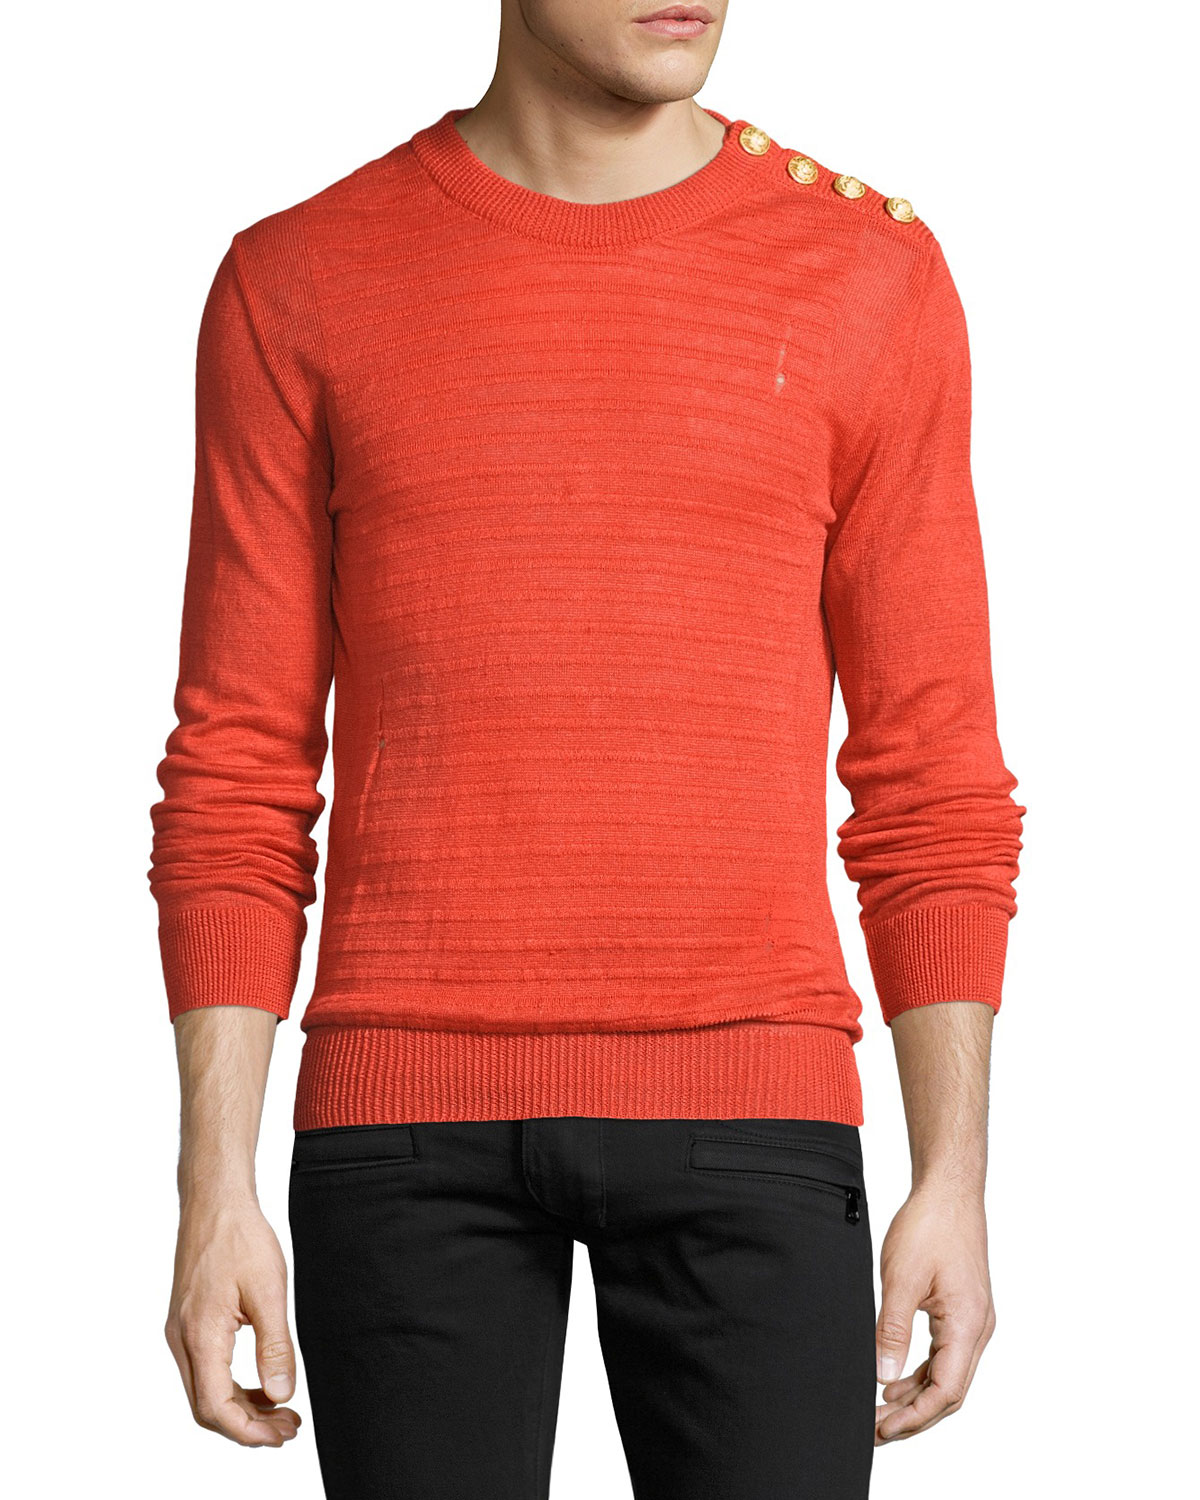 Ribbed Linen Button-Shoulder Sweater, Orange